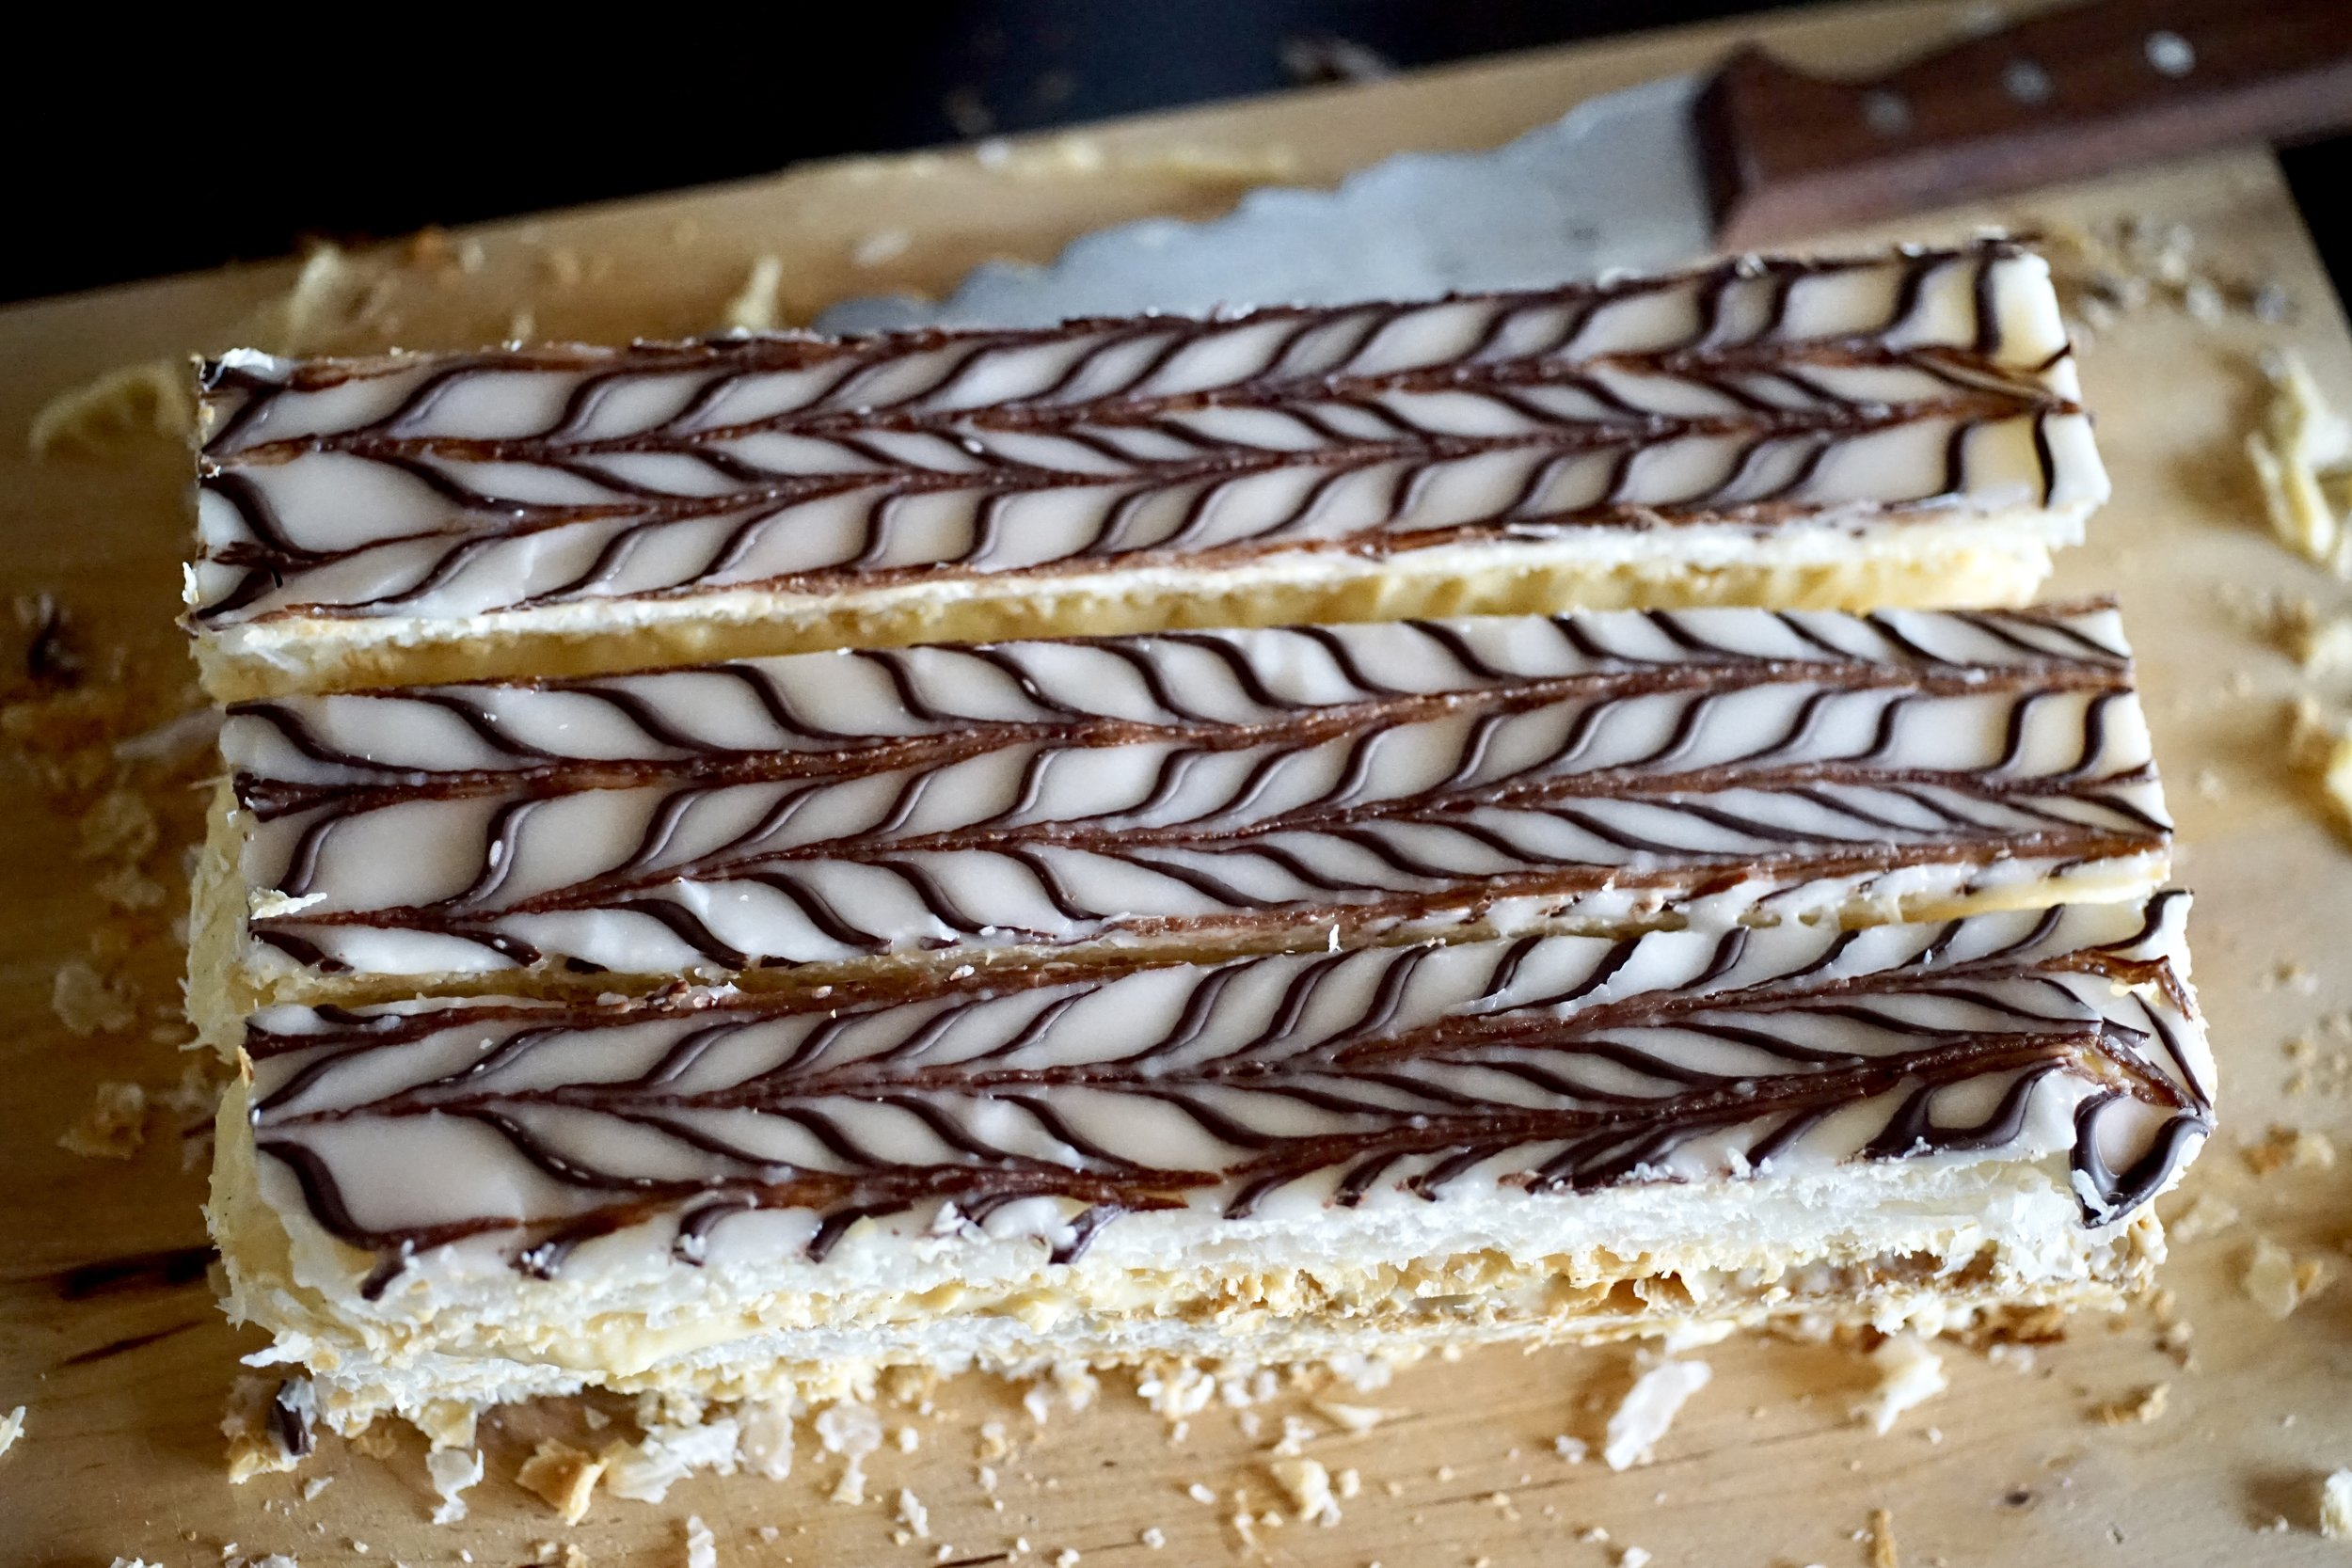 Want more Swiss pastry in your life? - Cremeschnitte